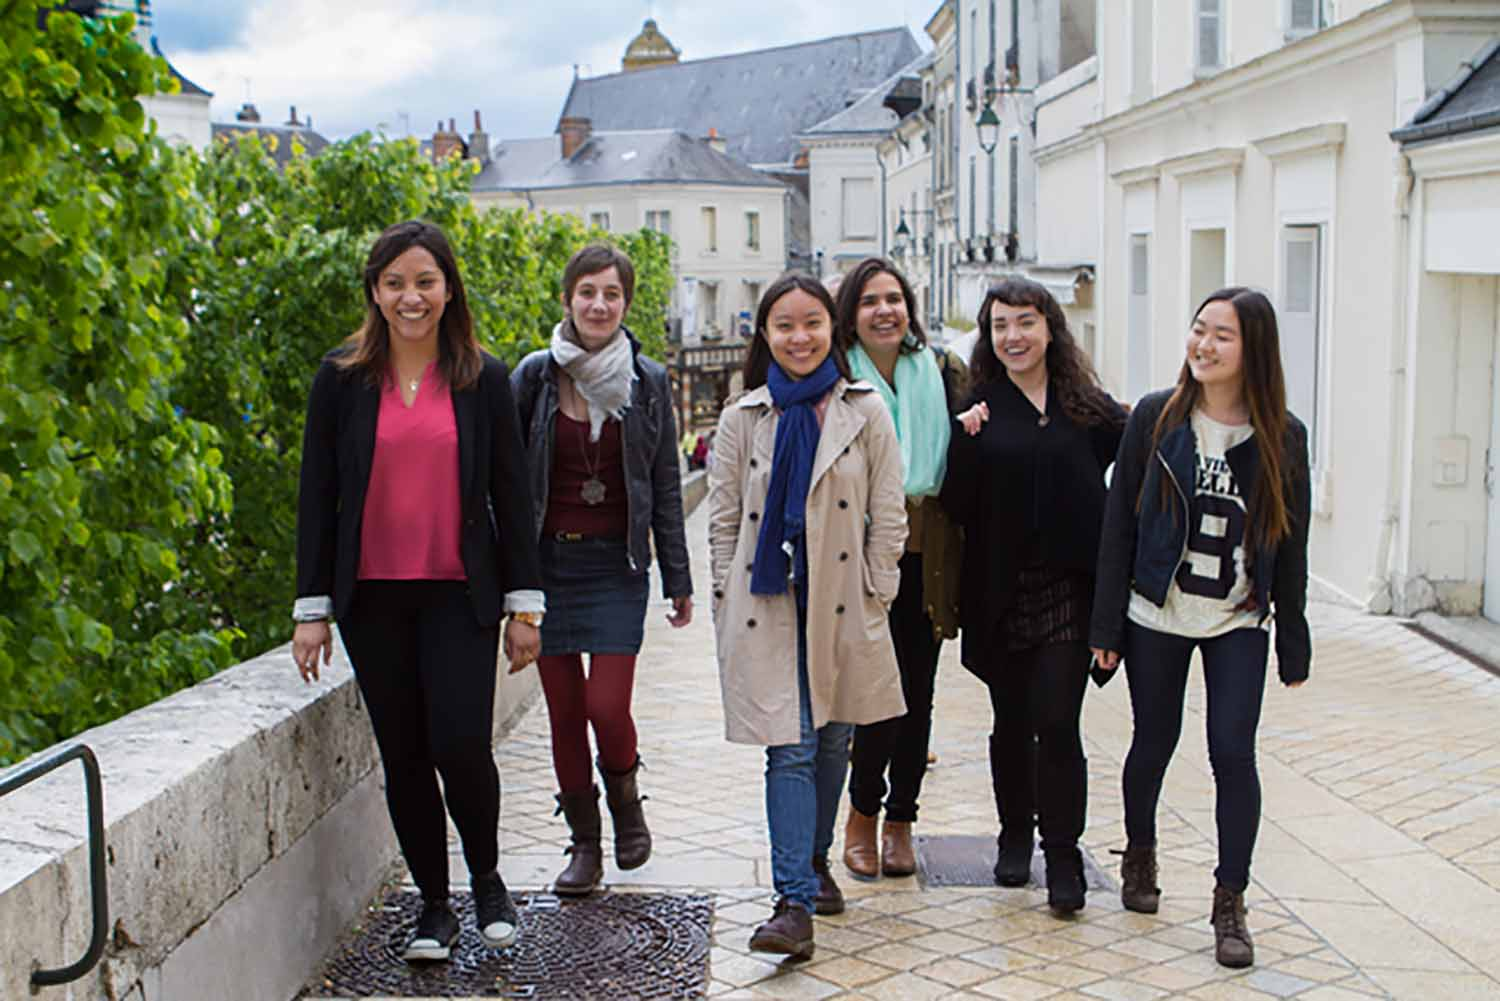 Amboise_Location_Leisure_Students_03_Preview_large